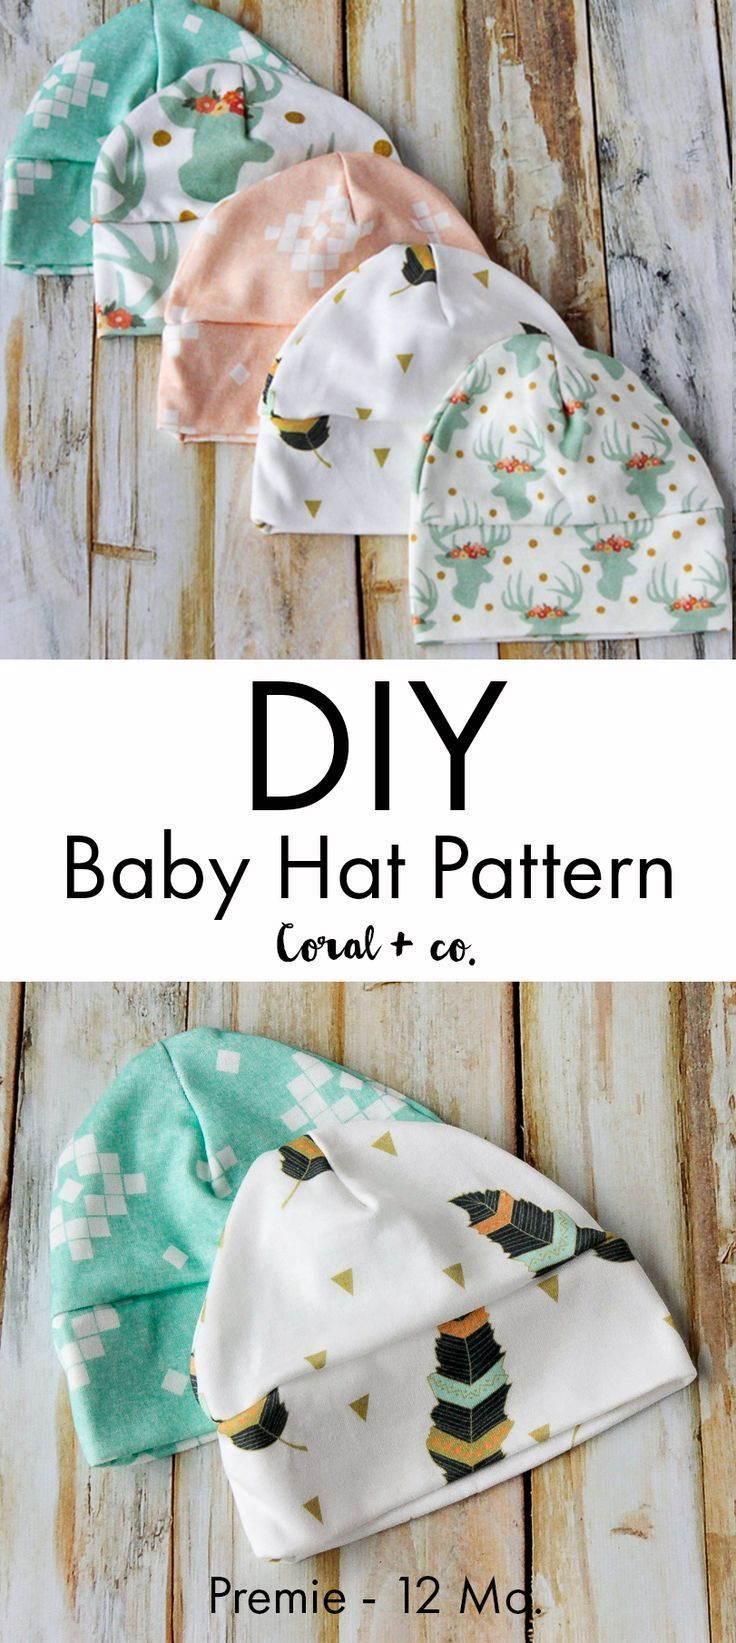 Adorable Baby Hat Sewing Pattern! It comes in sizes  preemie through 12 months so it is perfect for infants and big babies. She has a wonderful web site! This cute little baby cap is made out of soft knit fabric and comes with a  fitted top and a cuff